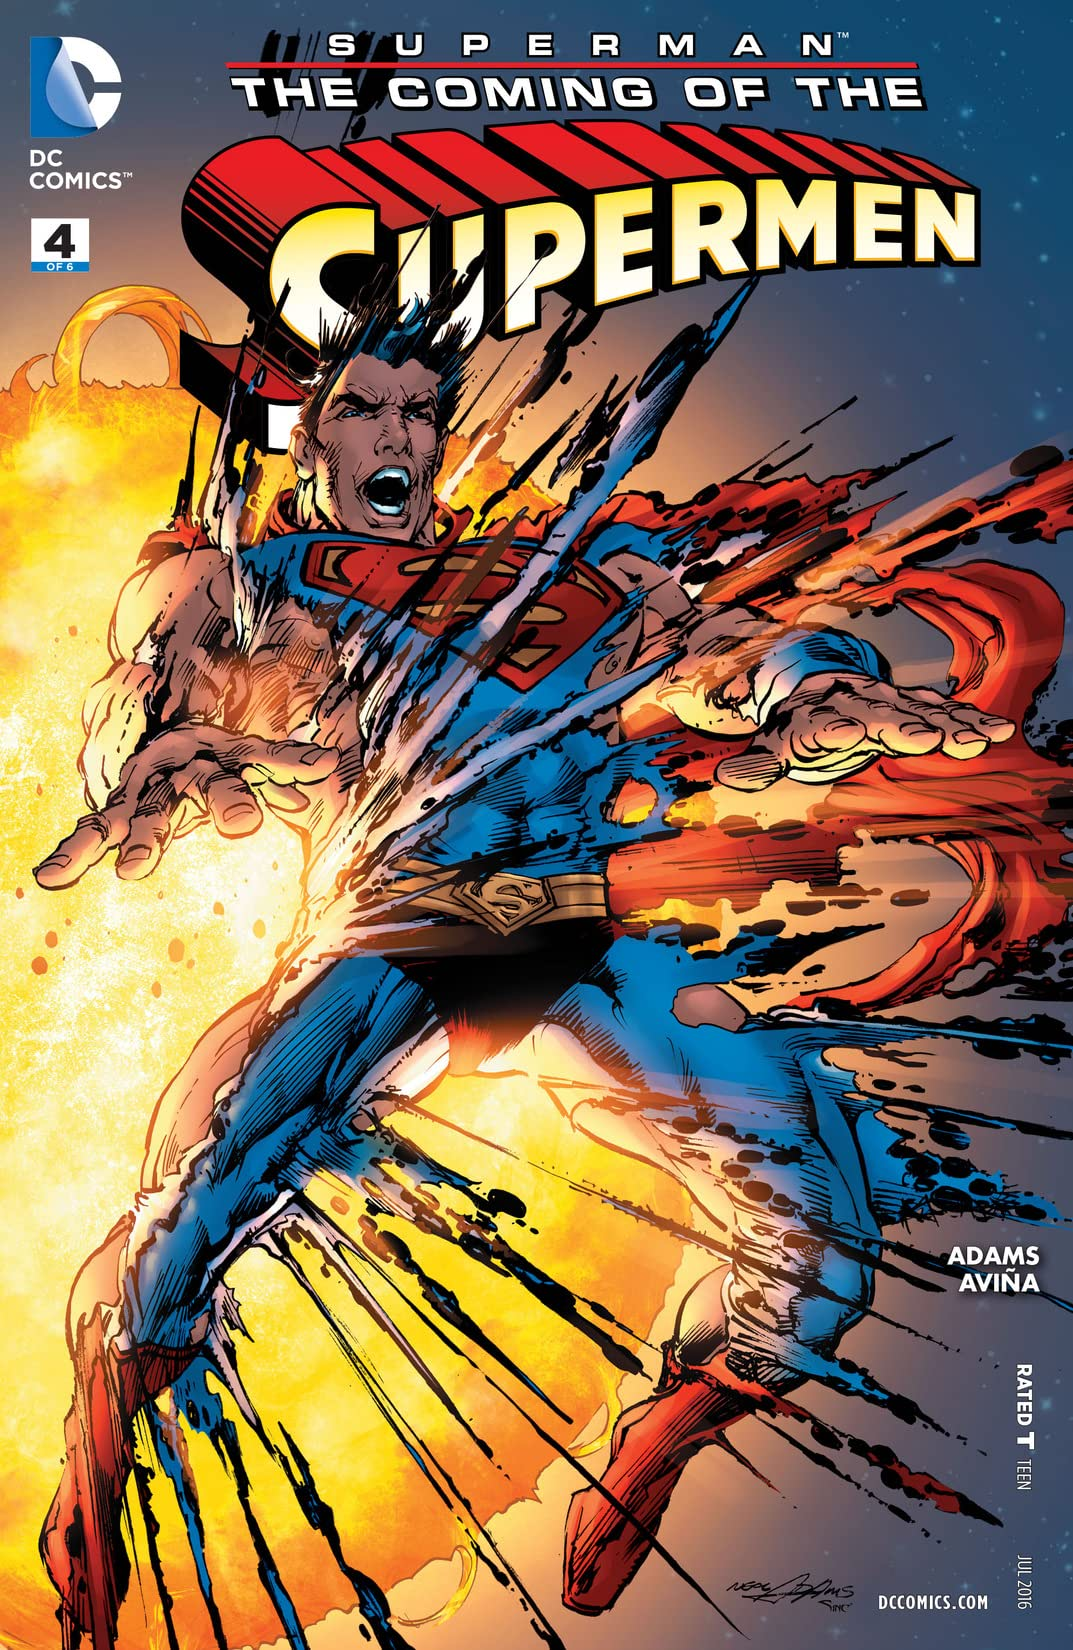 Superman: The Coming of the Supermen (2016) #4